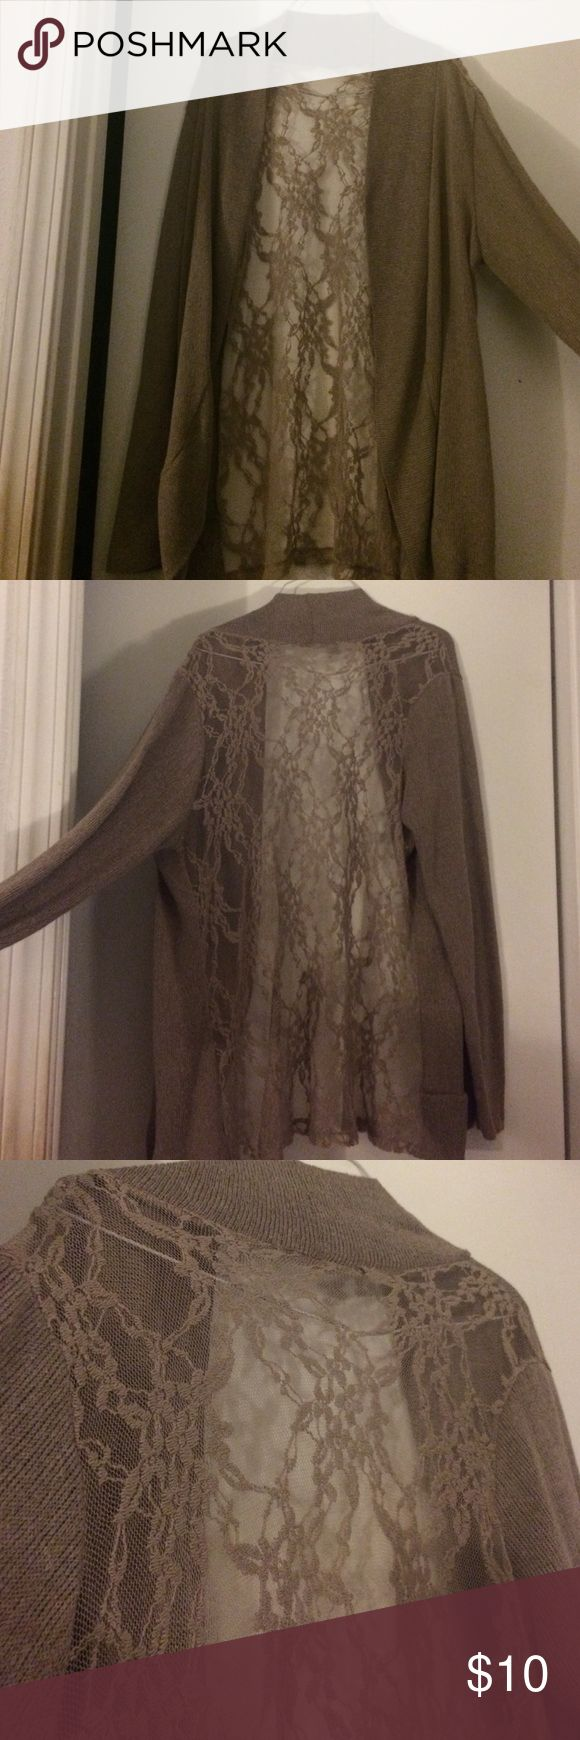 Khaki colored Lace cardigan I have a khaki/dark tan colored cardigan. Back is mostly all Lace apart from the neck trim. No rips in the Lace and no pockets. Thinner but oversized. Does not have tags but I originally bought from forever 21+ line. Would fit L-1x. Maybe even a medium if you want the oversized look. Forever 21 Sweaters Cardigans